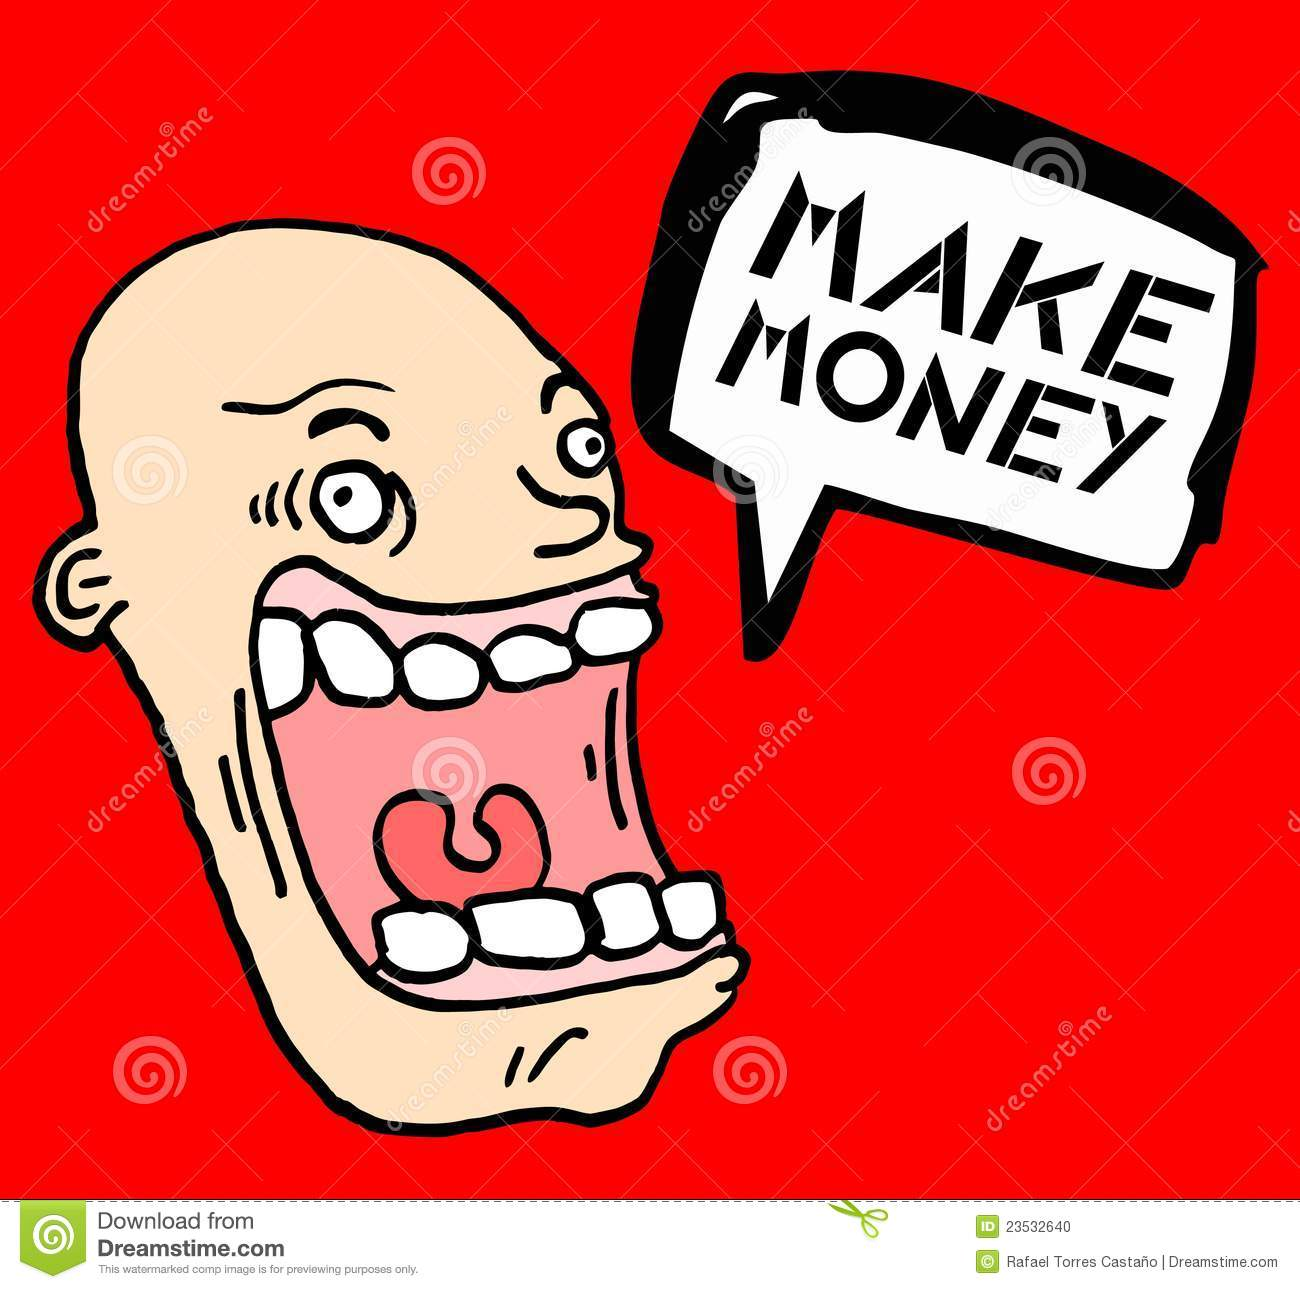 Al Madina Saudi Arabia likewise Cartoon Make Money moreover Queenelizabethi together with Detecting A Pattern in addition Dry Martini London. on cartoon money capital